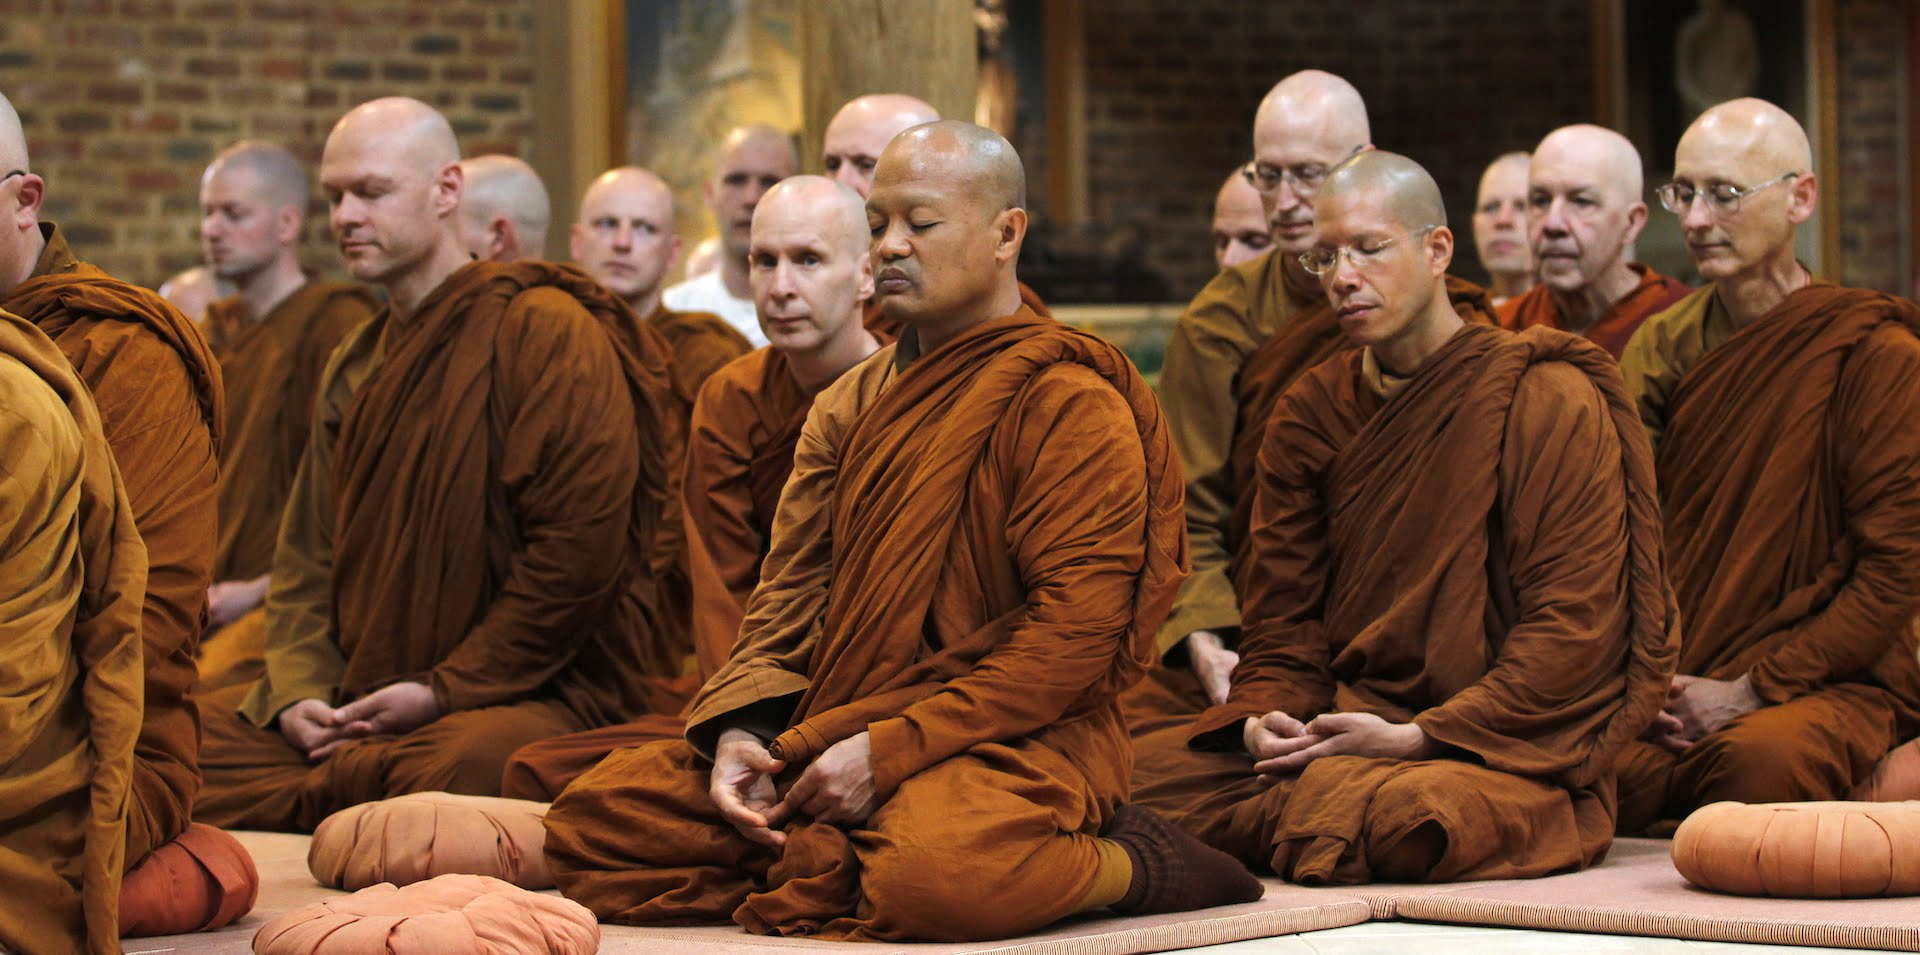 the spread of buddhism and christianity essay